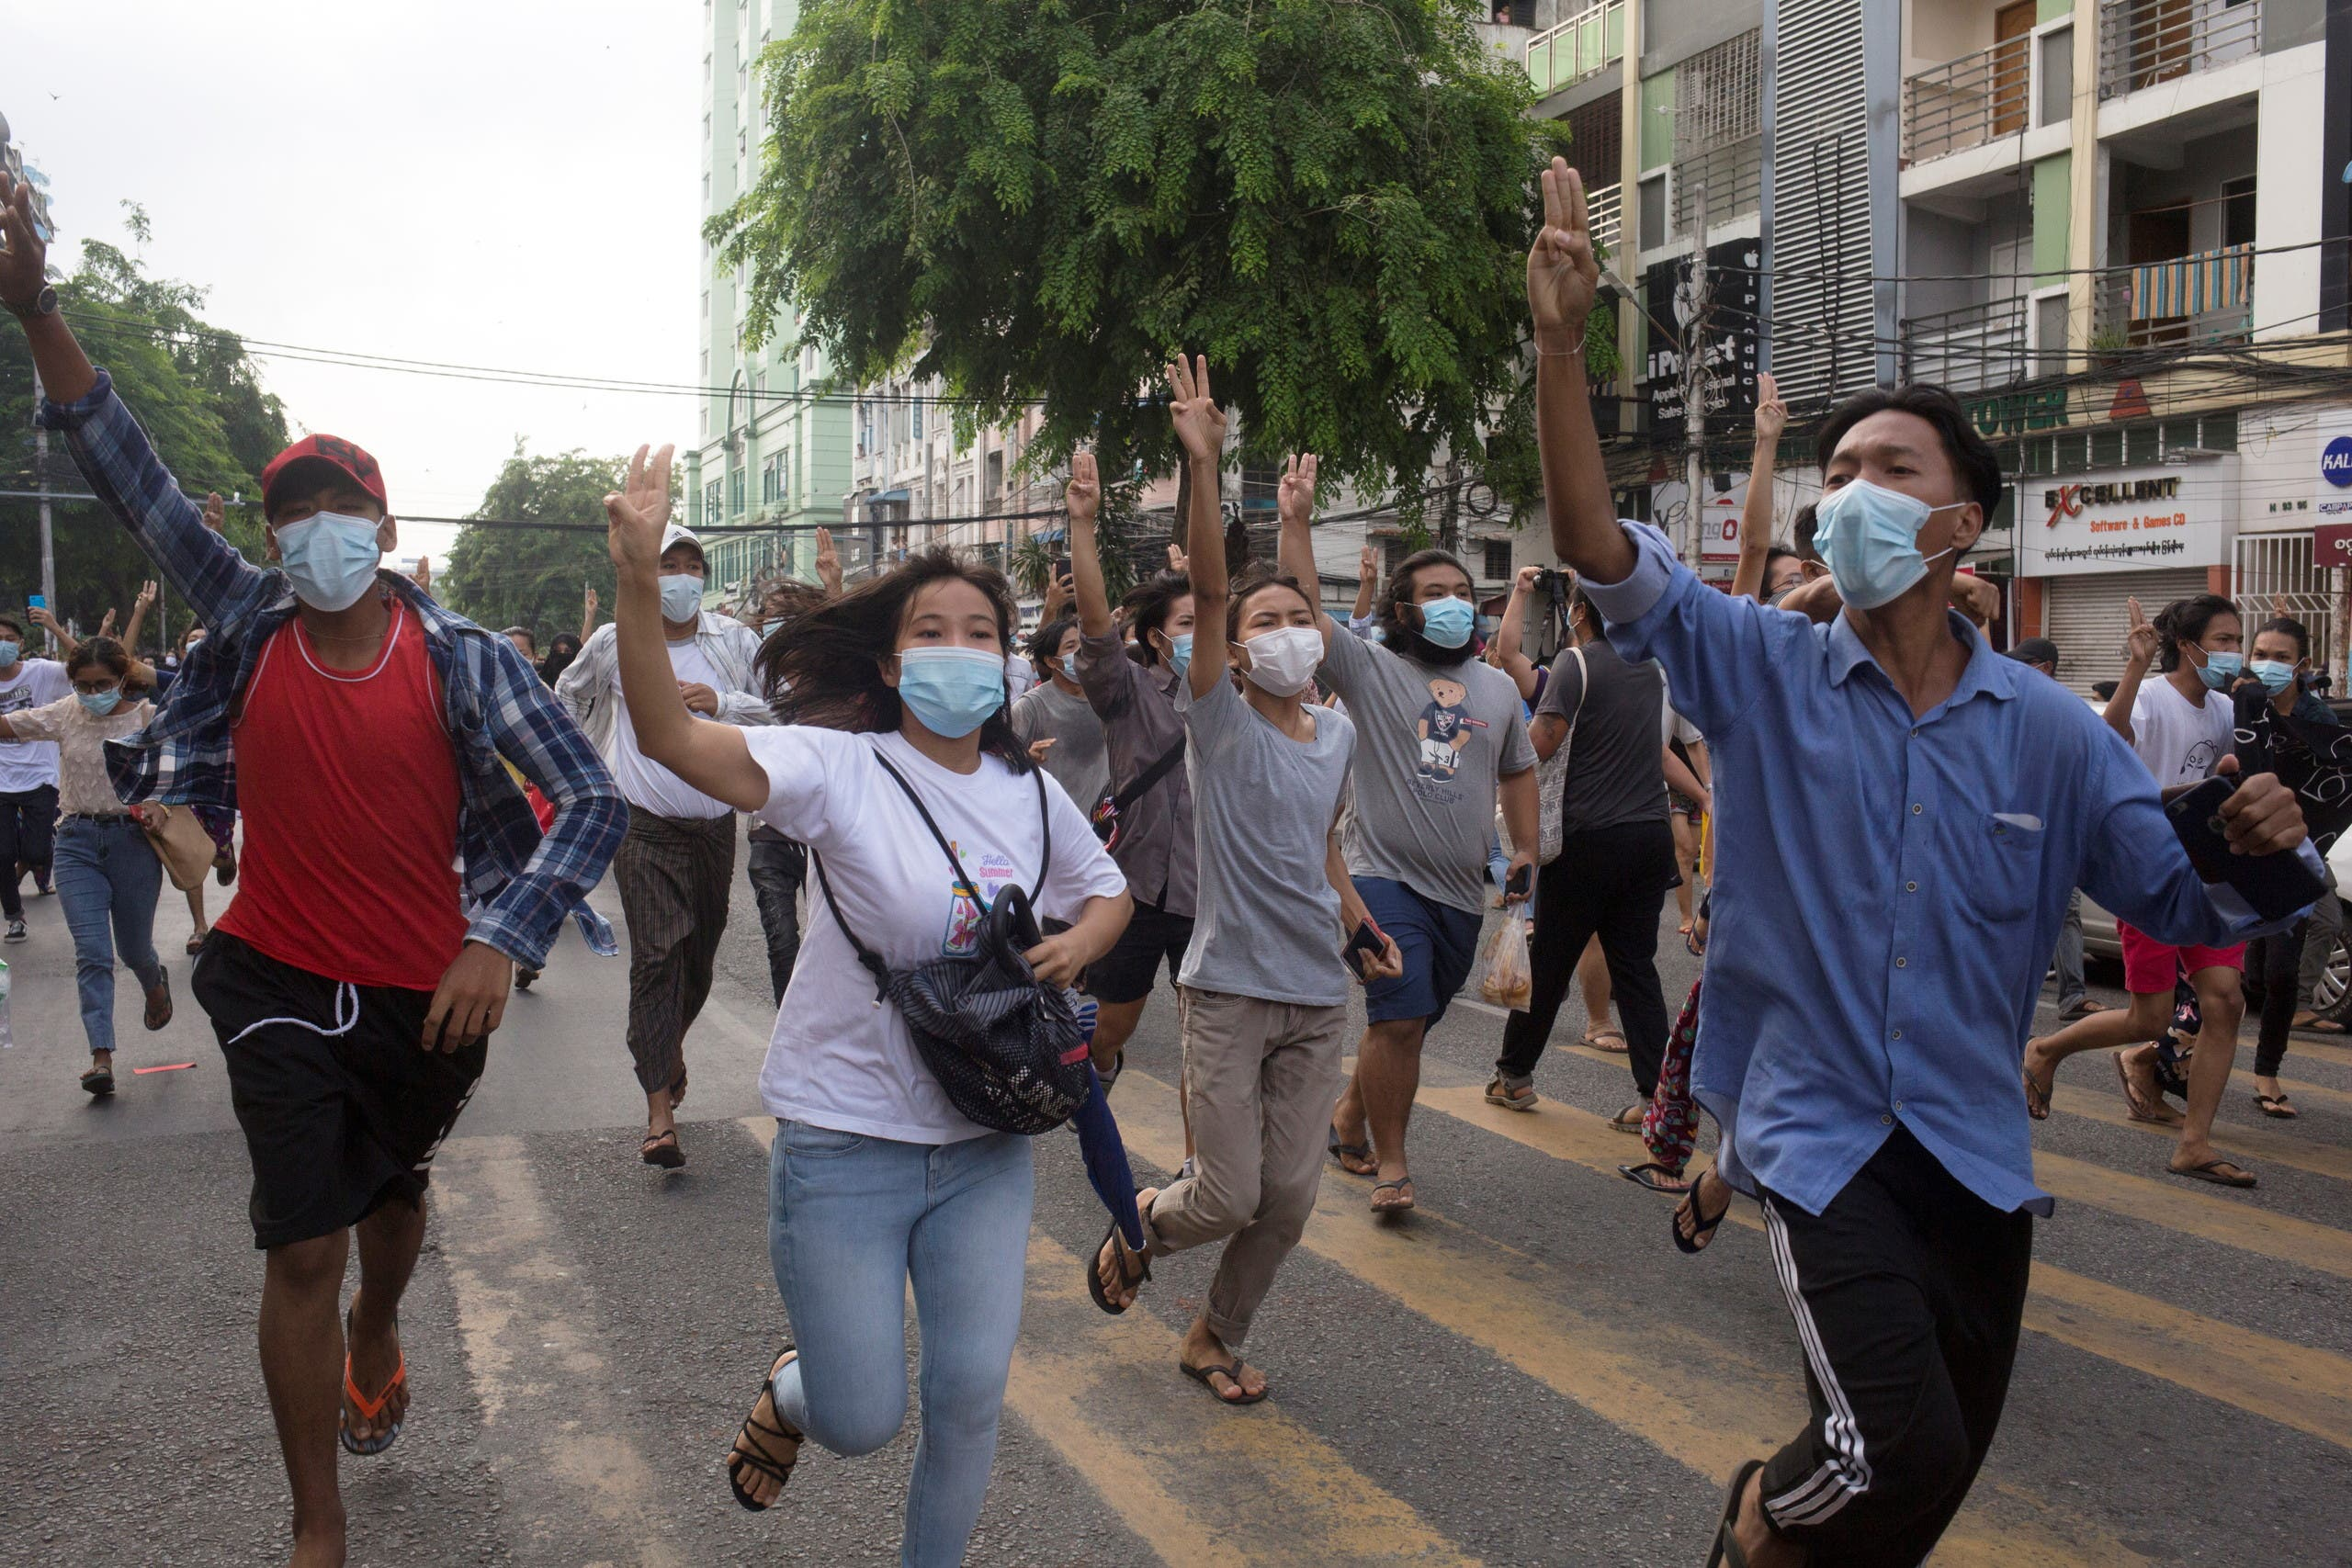 Took place on Thursday in Yangon held a peaceful anti-coup rally